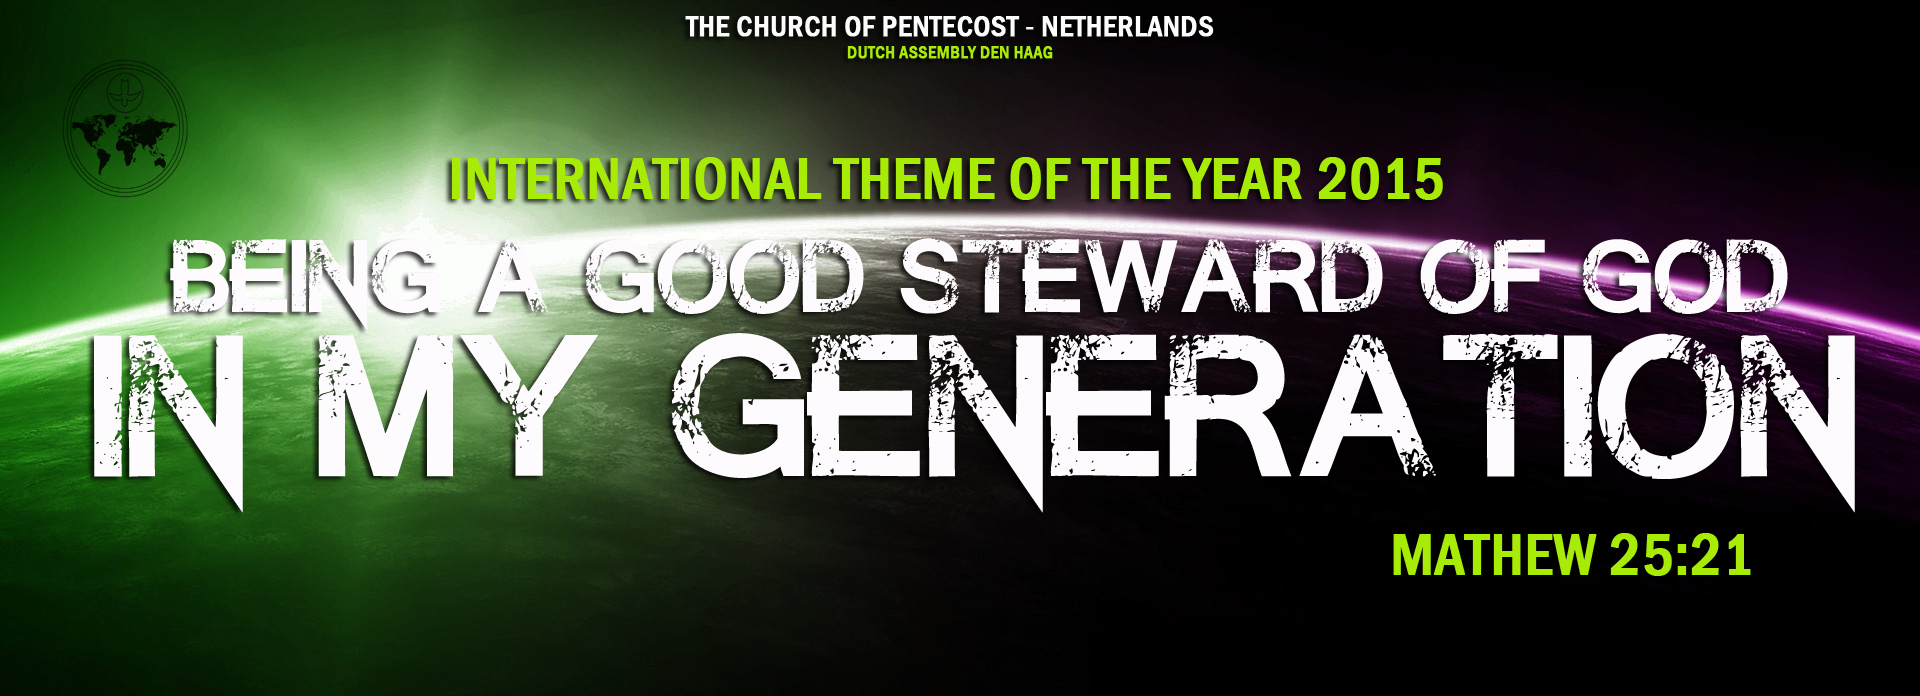 new year new things in 2015 | Dutch Church of Pentecost Holland